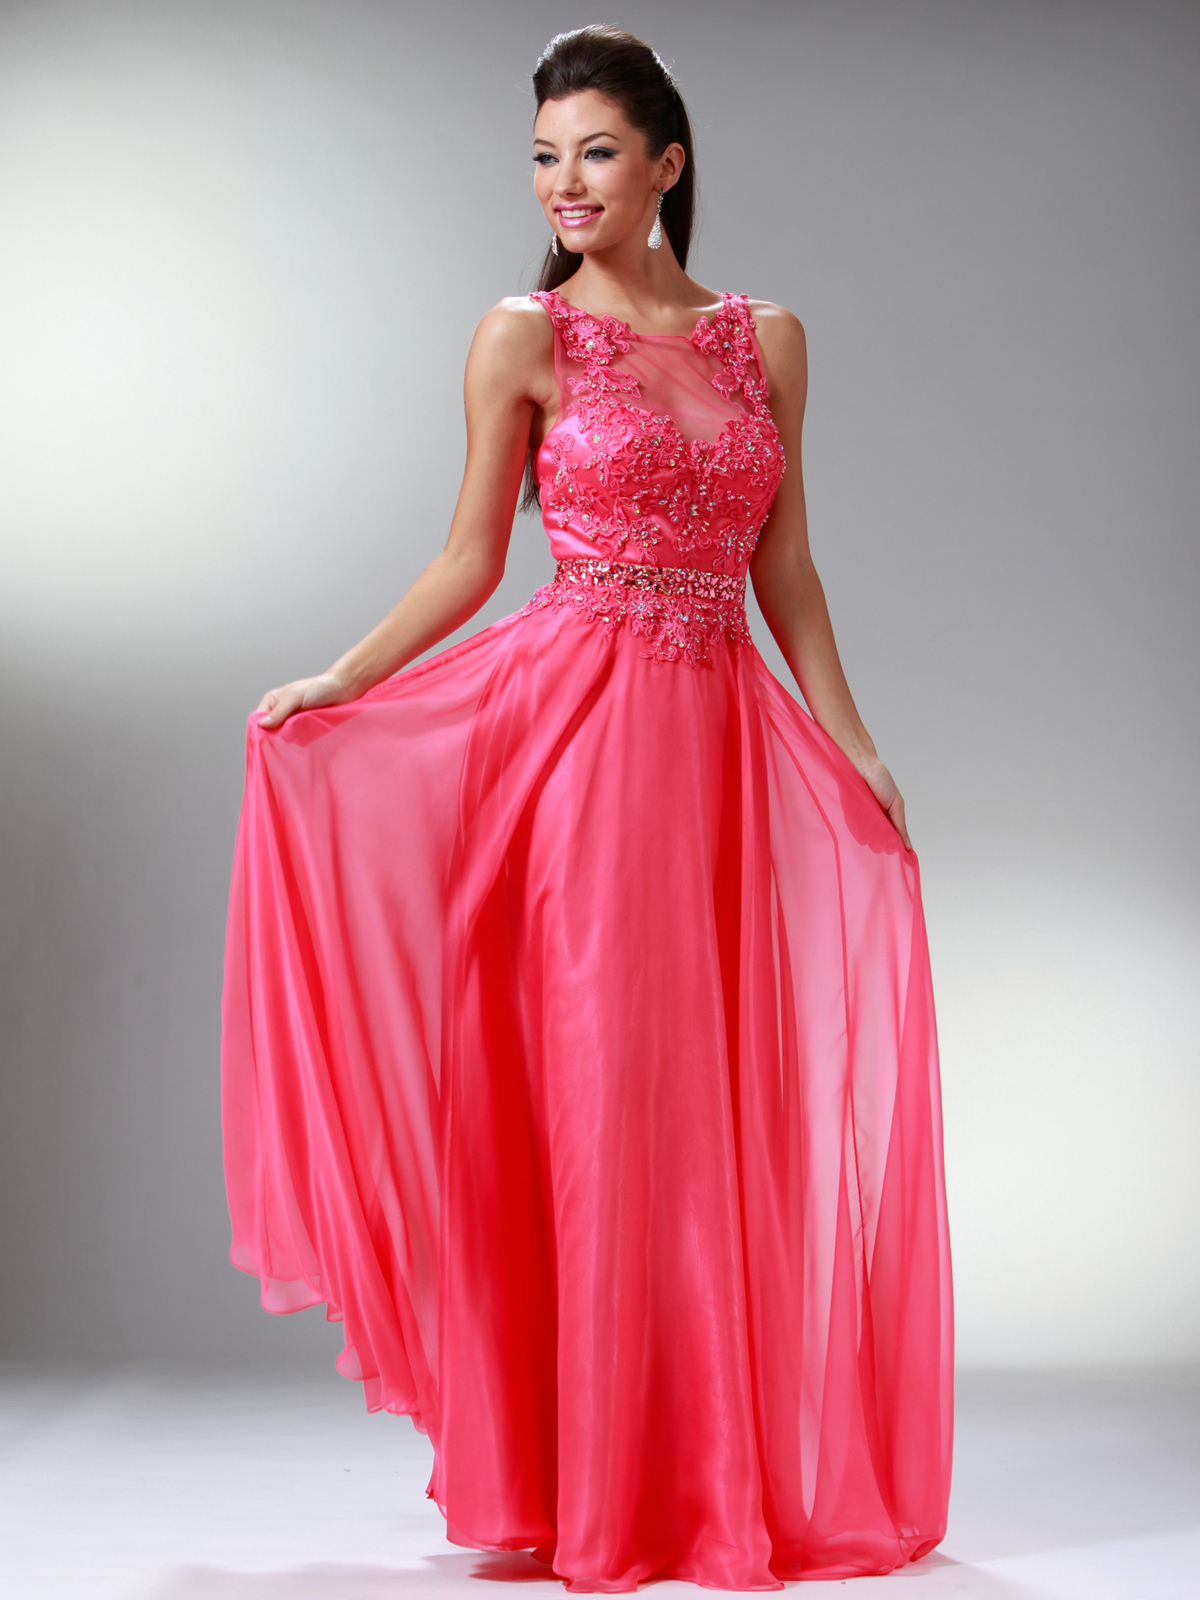 Watermelon Lace & Embroidery Top Prom Dress | Sung Boutique L.A.